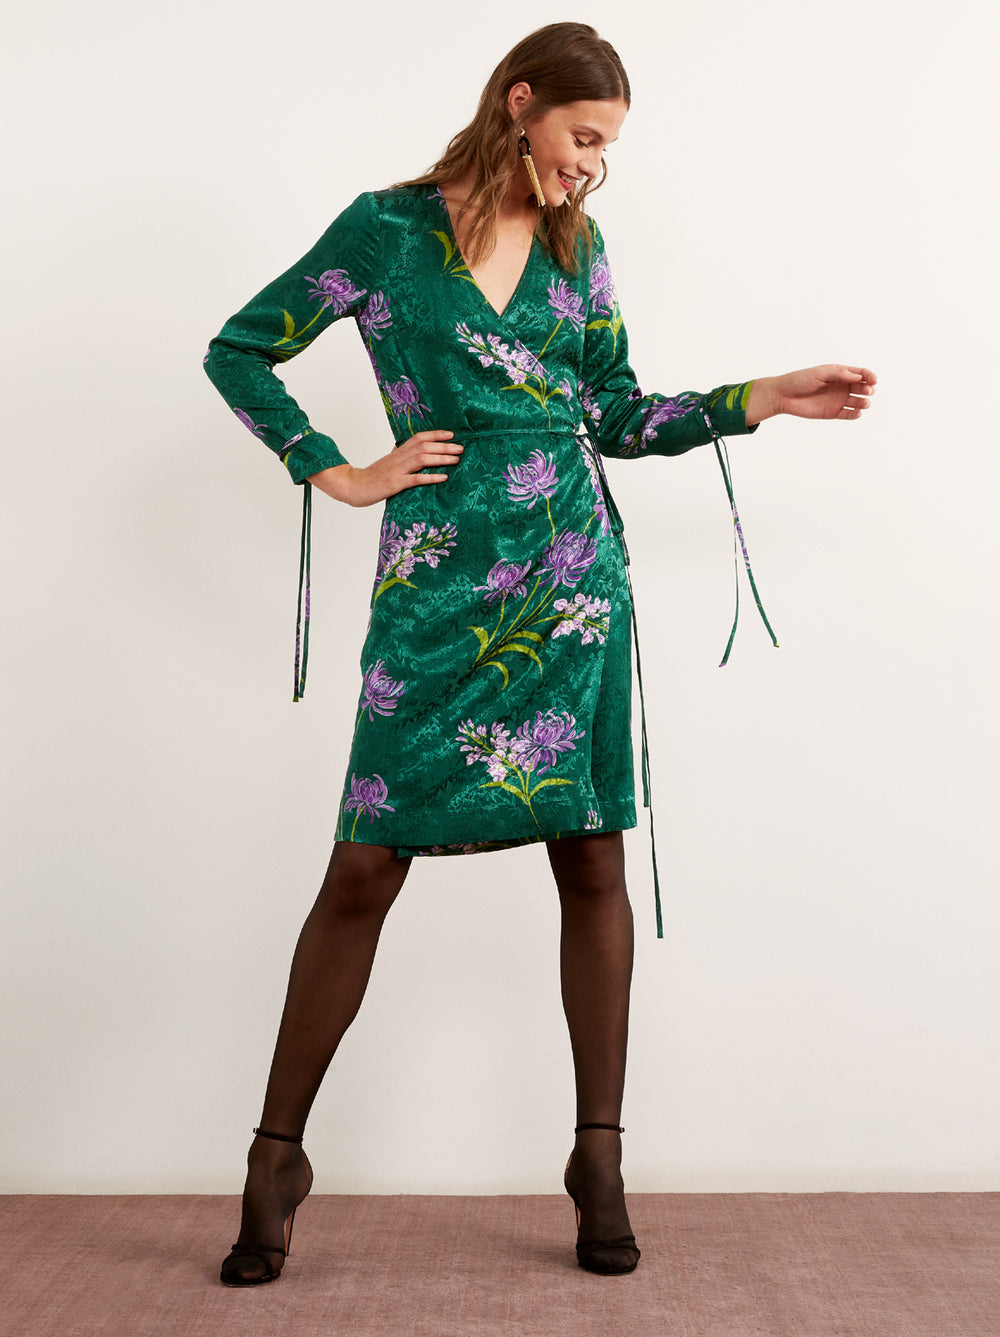 Lausanne Green Floral Print Wrap Dress by KITRI Studio